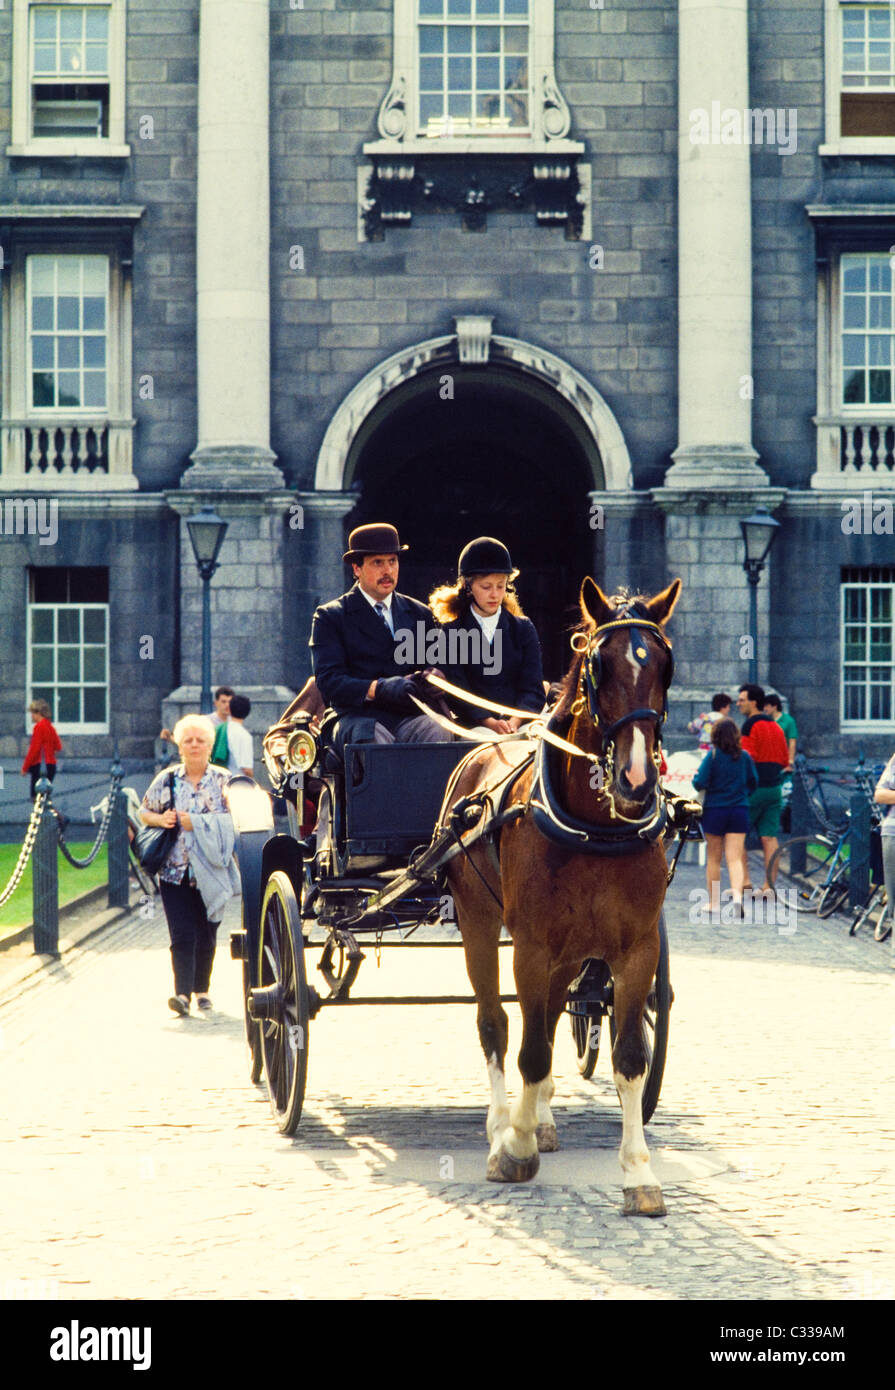 Dublin, Co Dublin, Ireland, Bloomsday At Trinity College - Stock Image